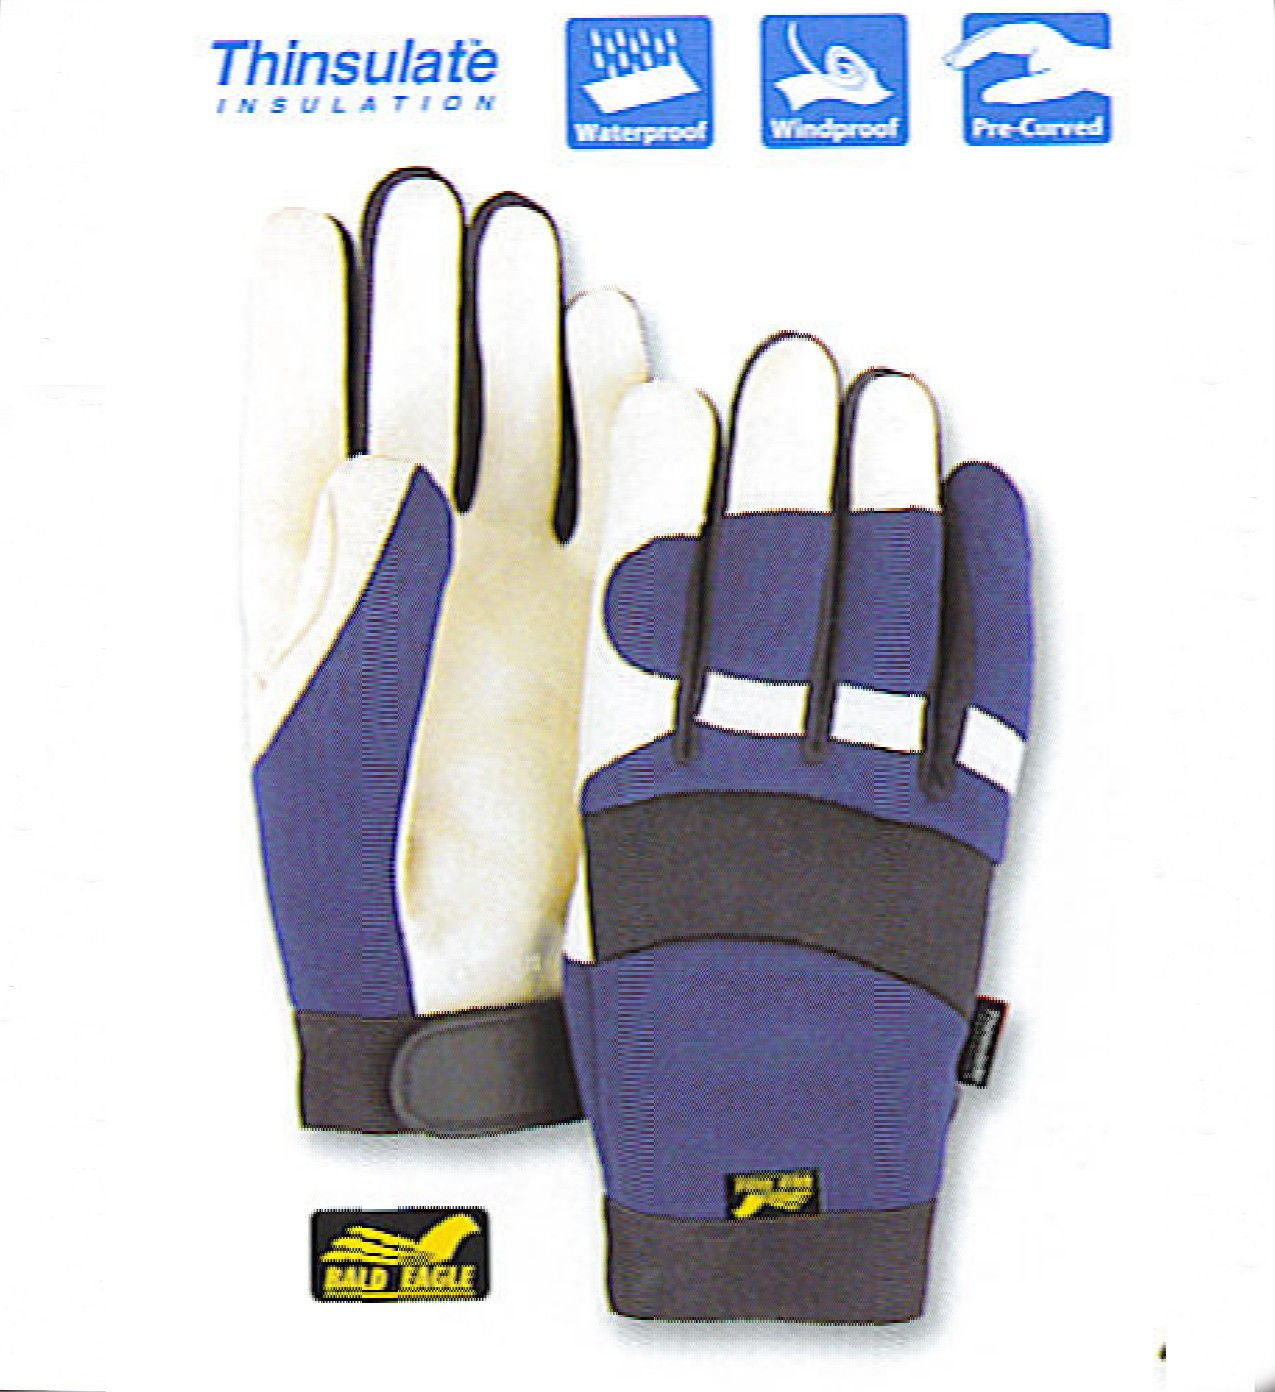 Motorcycle gloves thinsulate -  Waterproof Gloves Thinsulate Gloves